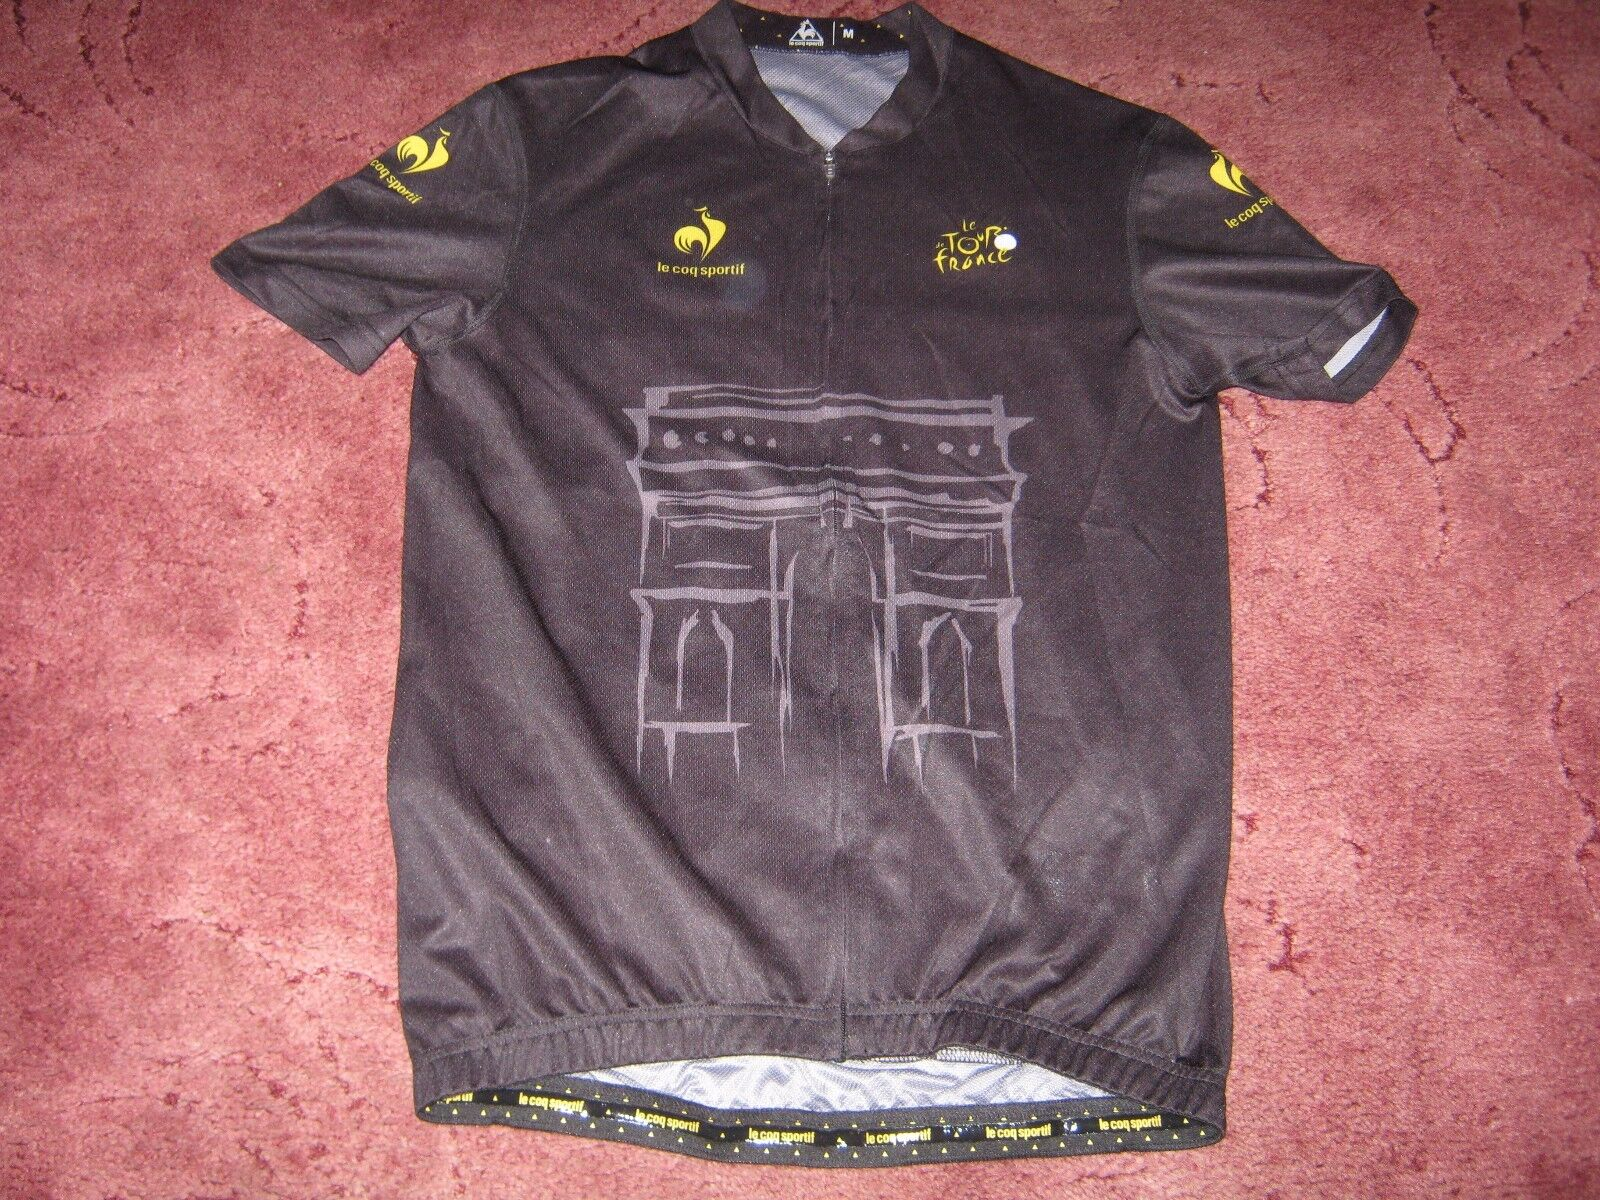 TOUR DE FRANCE LCS  DEDICATED PARIS CYCLING JERSEY [M] BNWOT